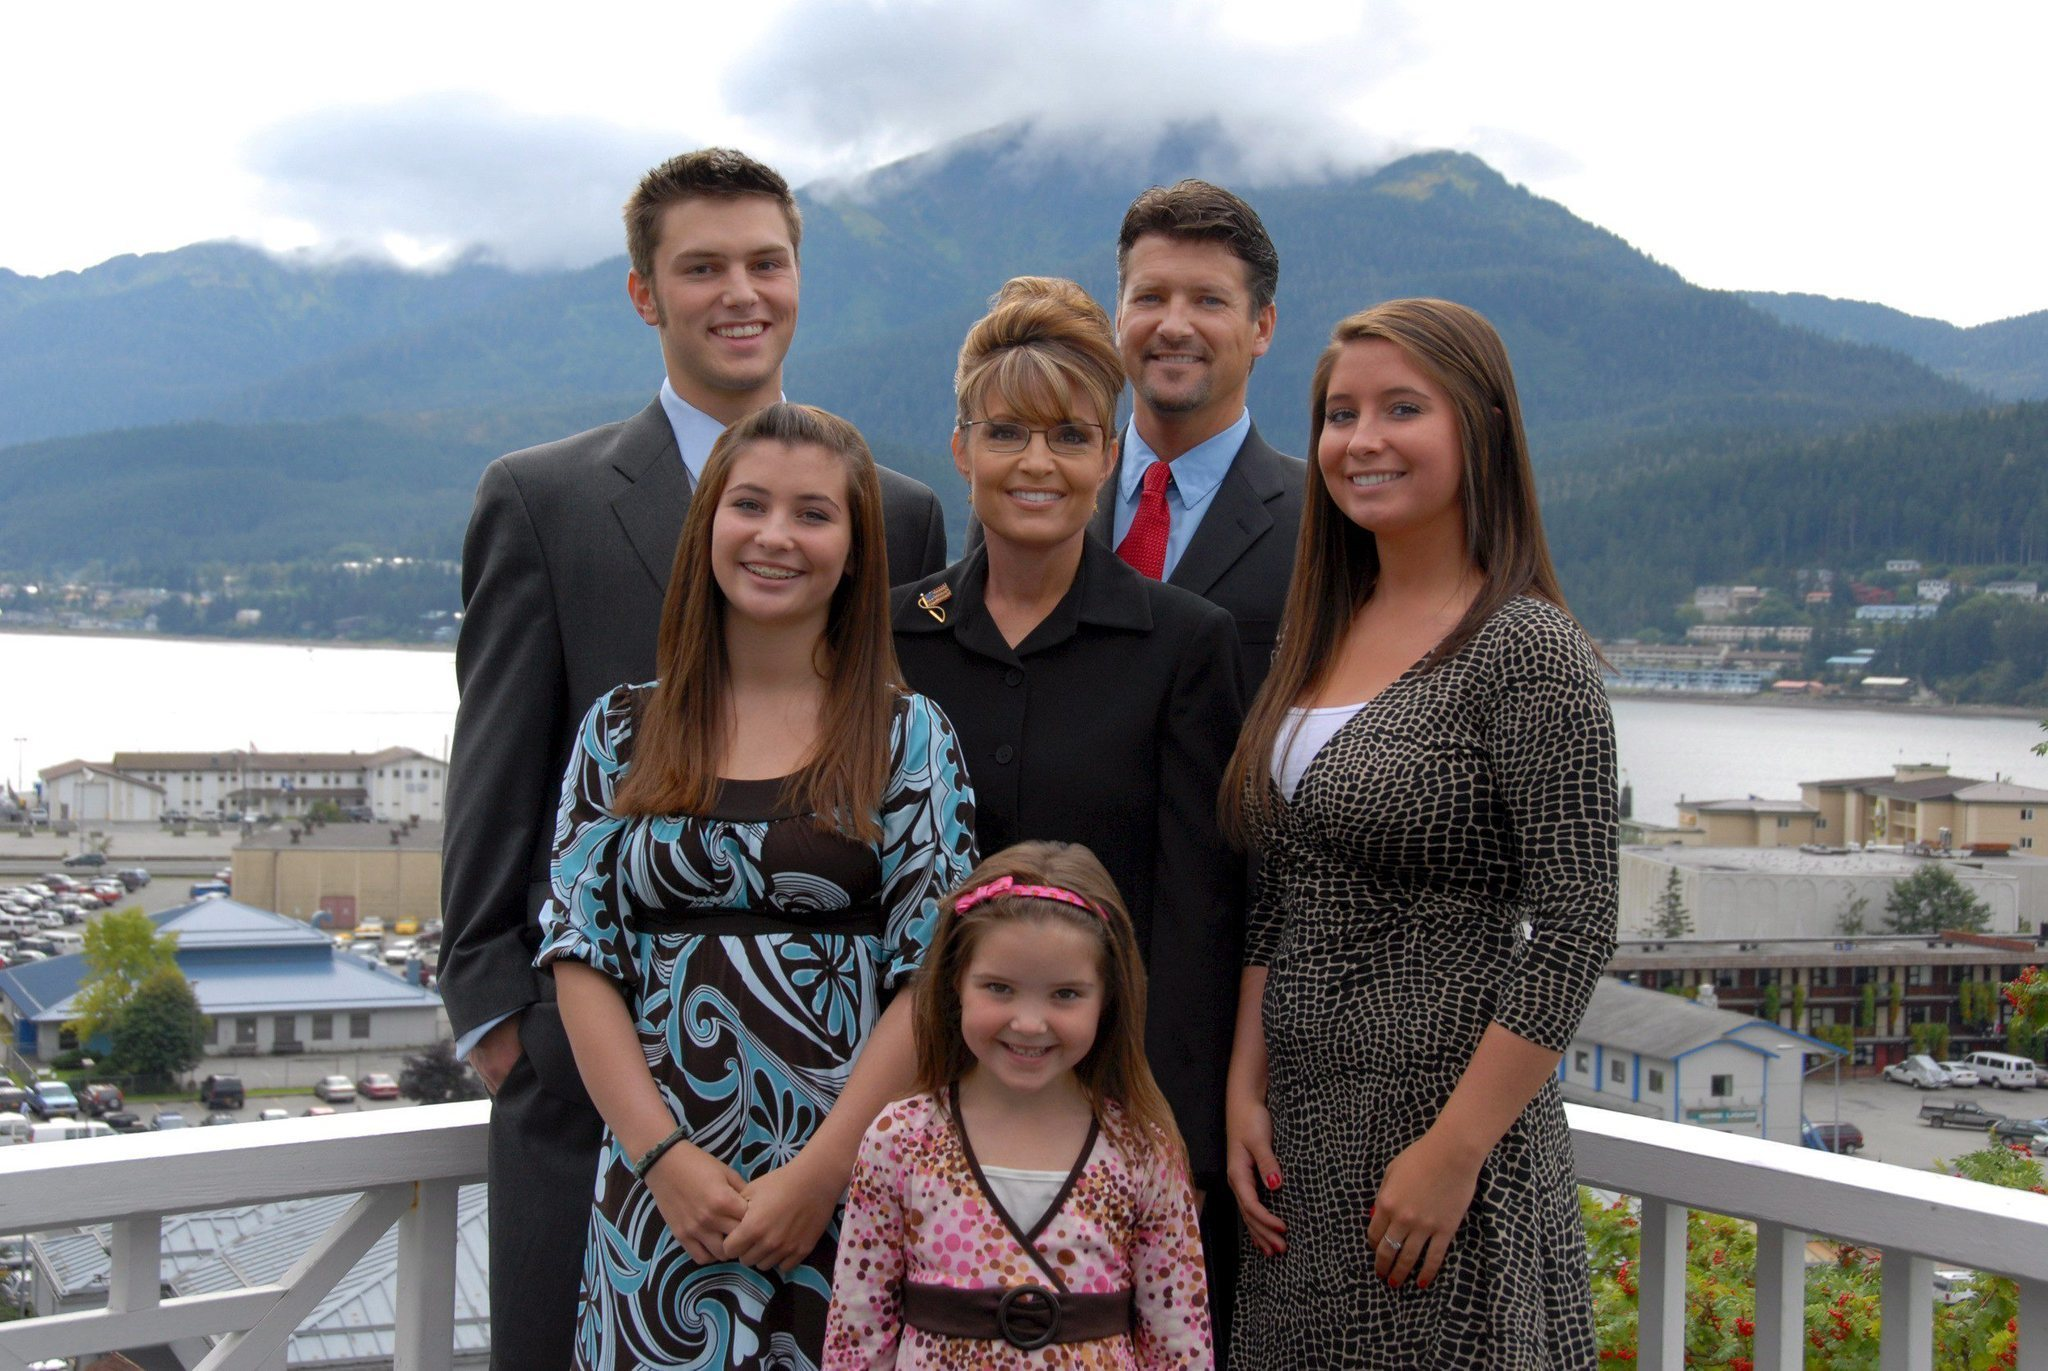 Track Palin, son of Sarah Palin, accused of assaulting his father